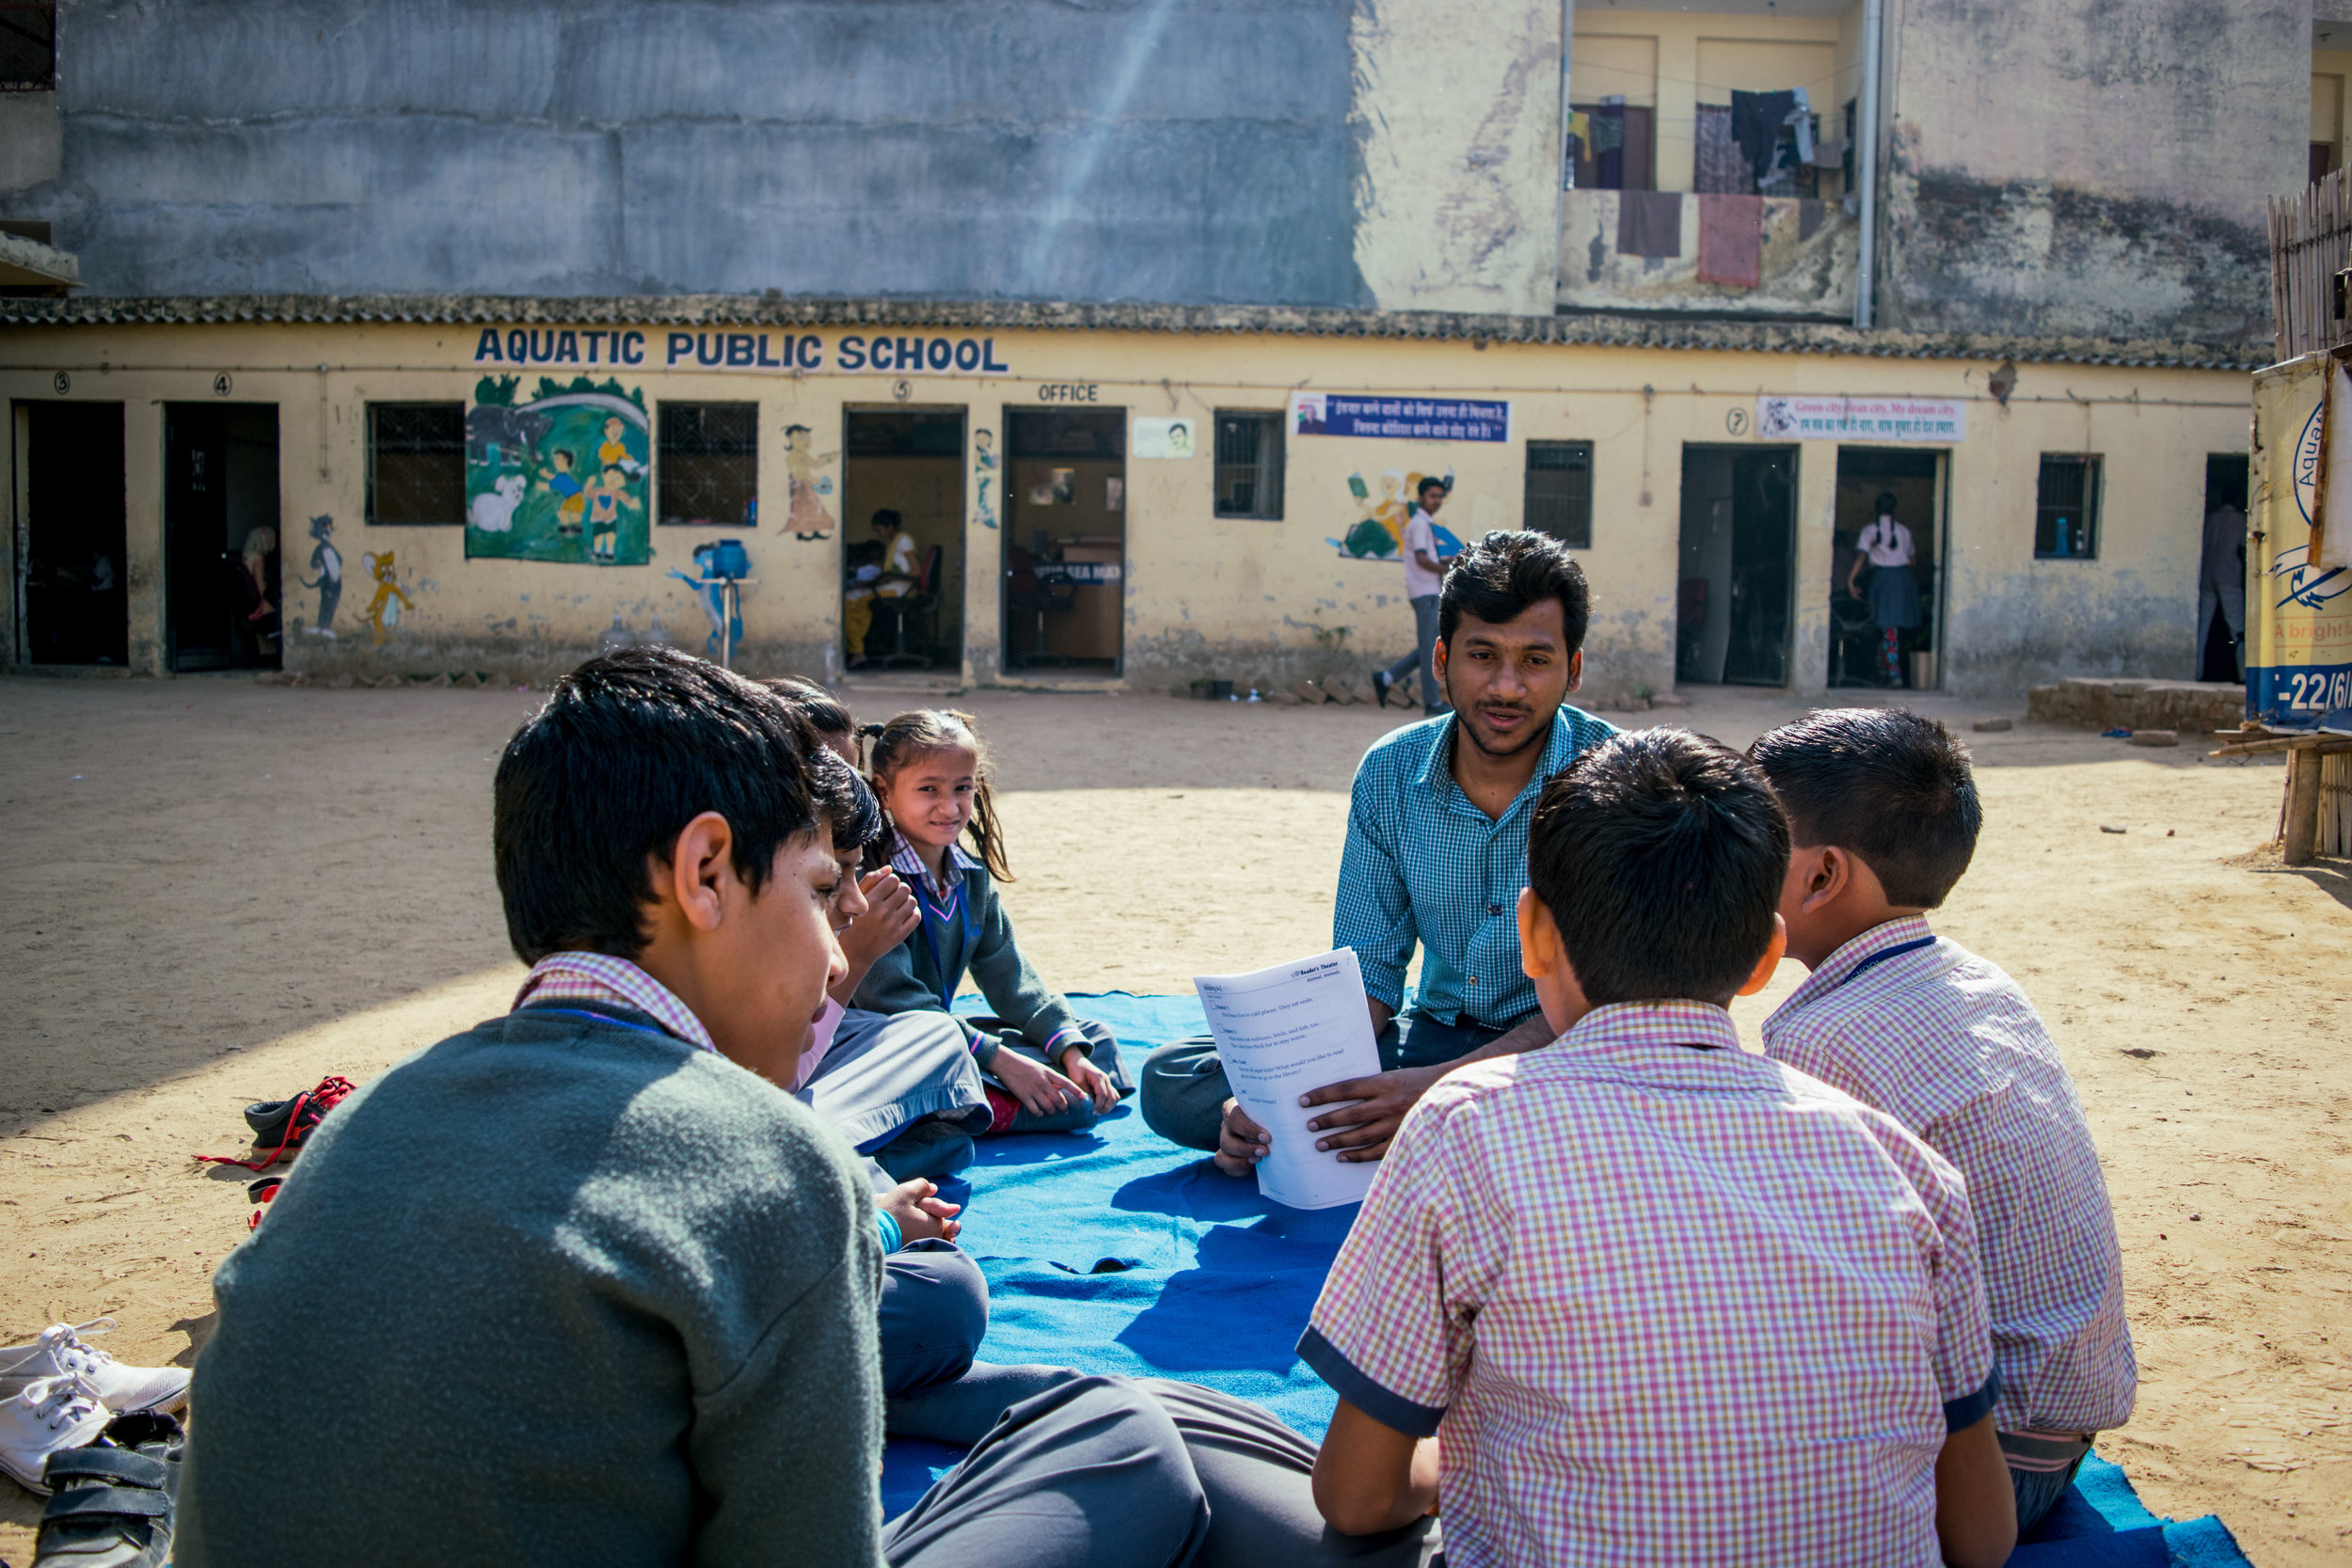 Our volunteer, Samuel, works with students at Aquatic Public School to improve their English comprehension. English is the language of business and commerce in India, making it a vital skill for young people to learn.